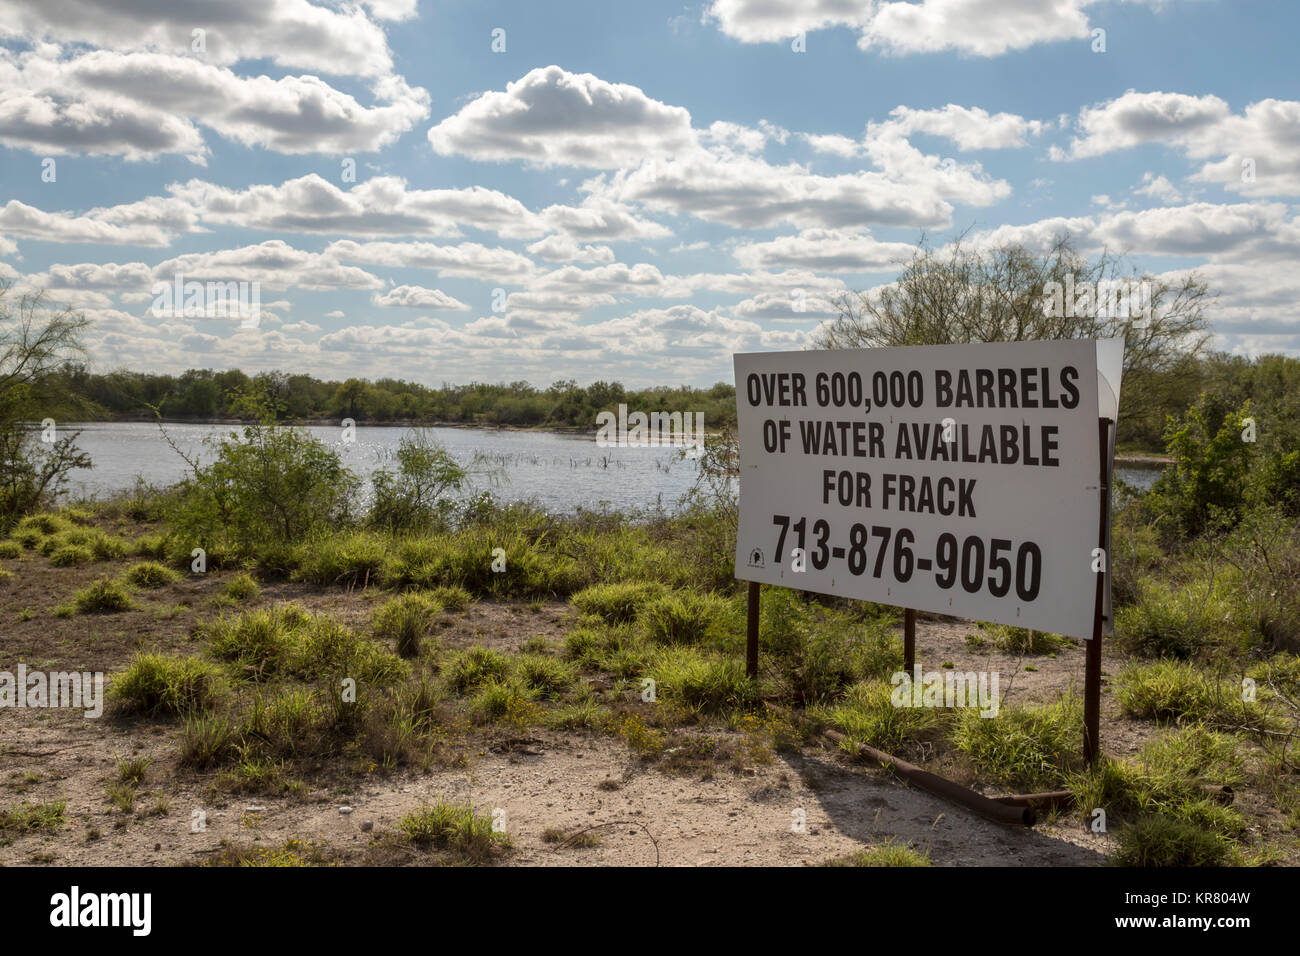 Tilden, Texas - Rancho Tres Hijos offers water for sale for fracking in oilfield operations in the surrounding Eagle - Stock Image